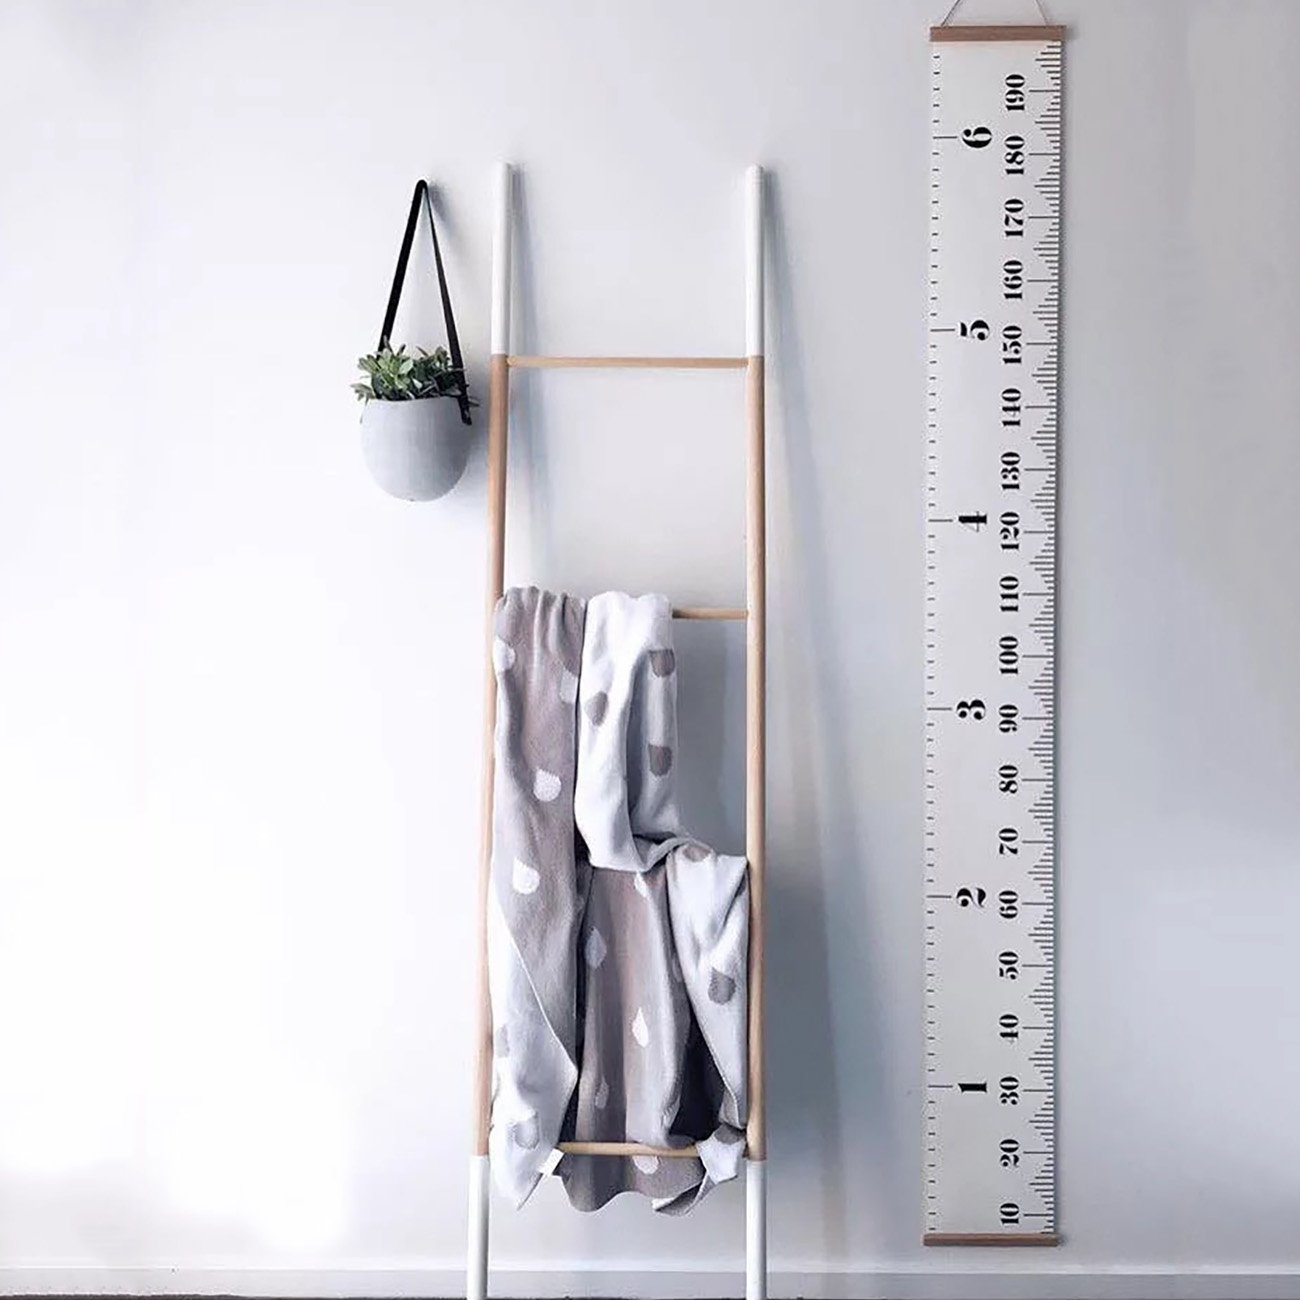 THEE Baby Height Growth Chart Ruler Wall Hanging Measurement Wall Decor with Wood Frame